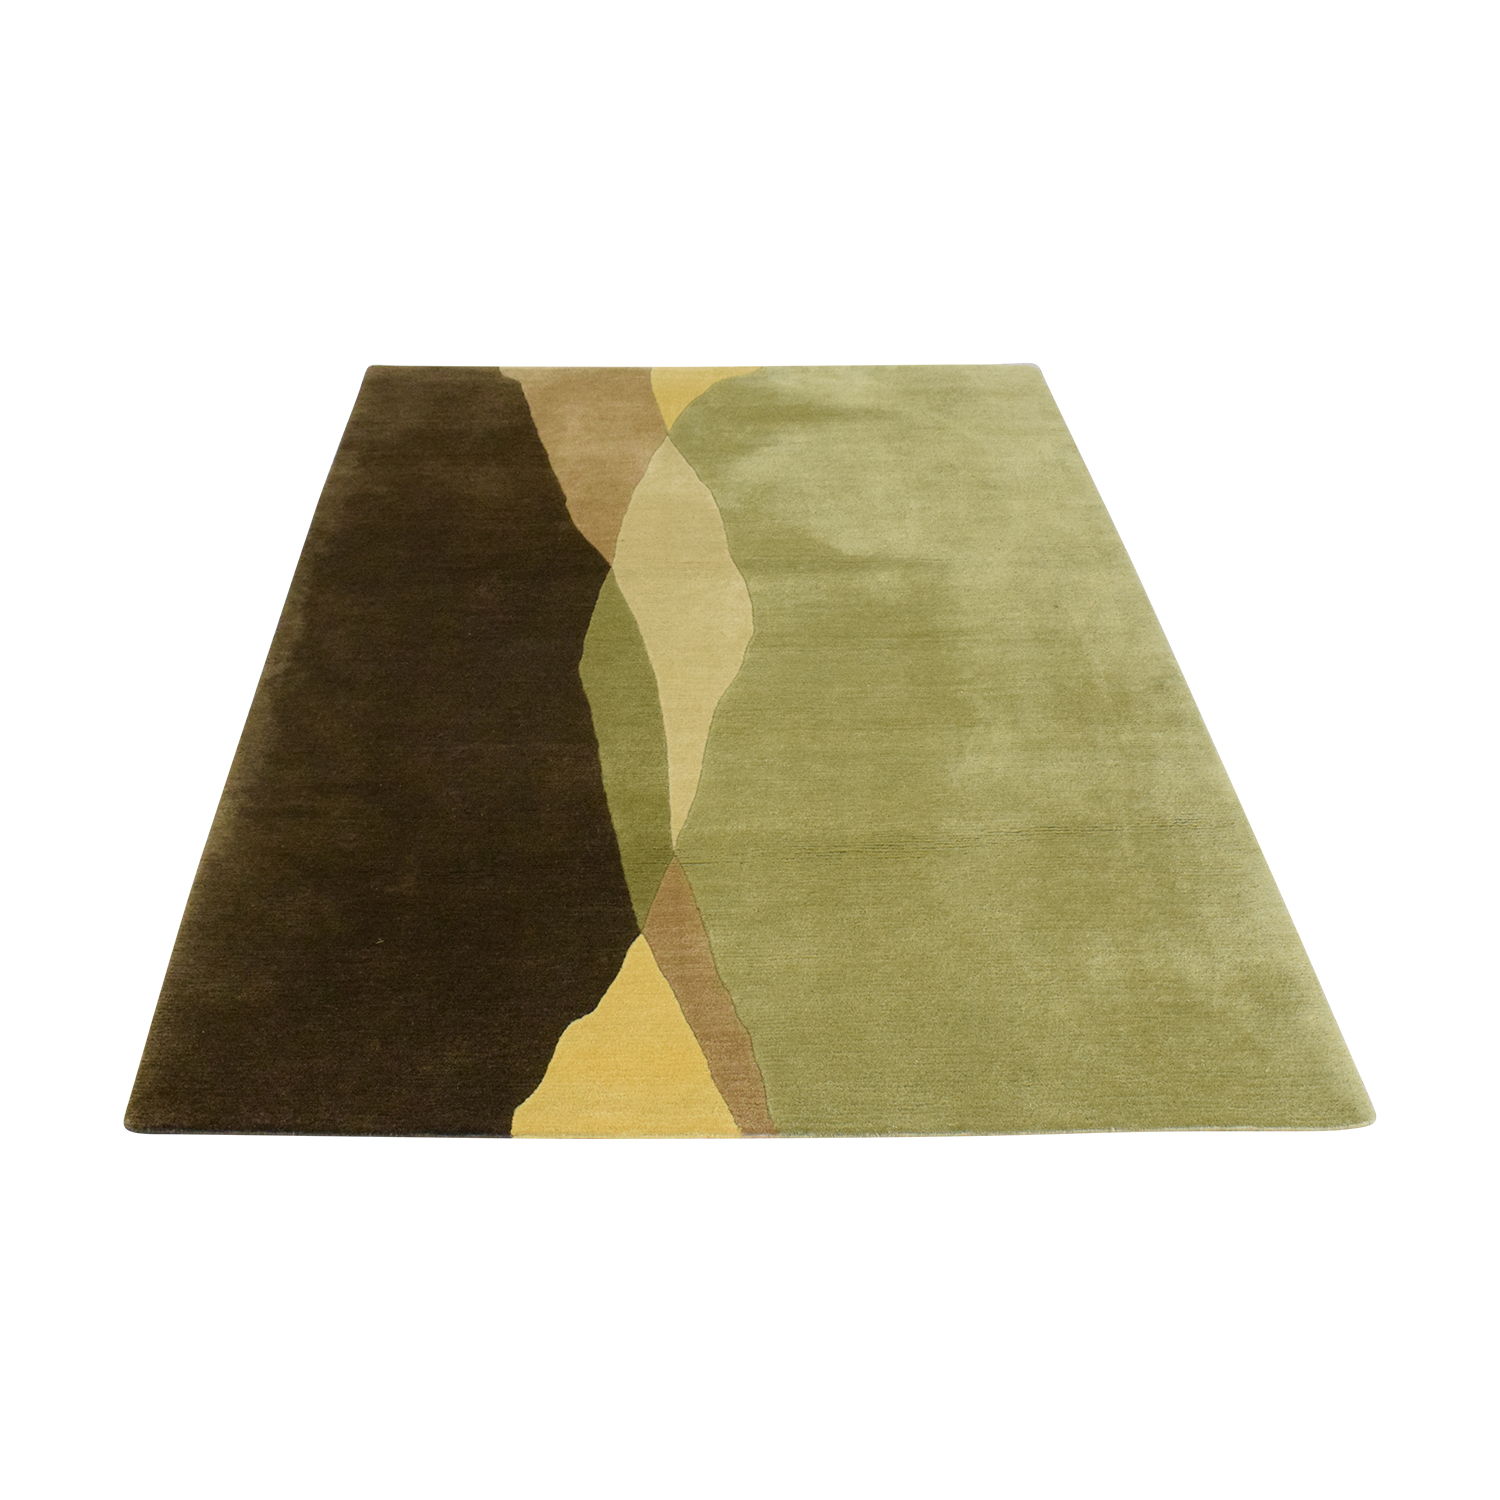 Brink & Campman Rug from Room & Board / Decor